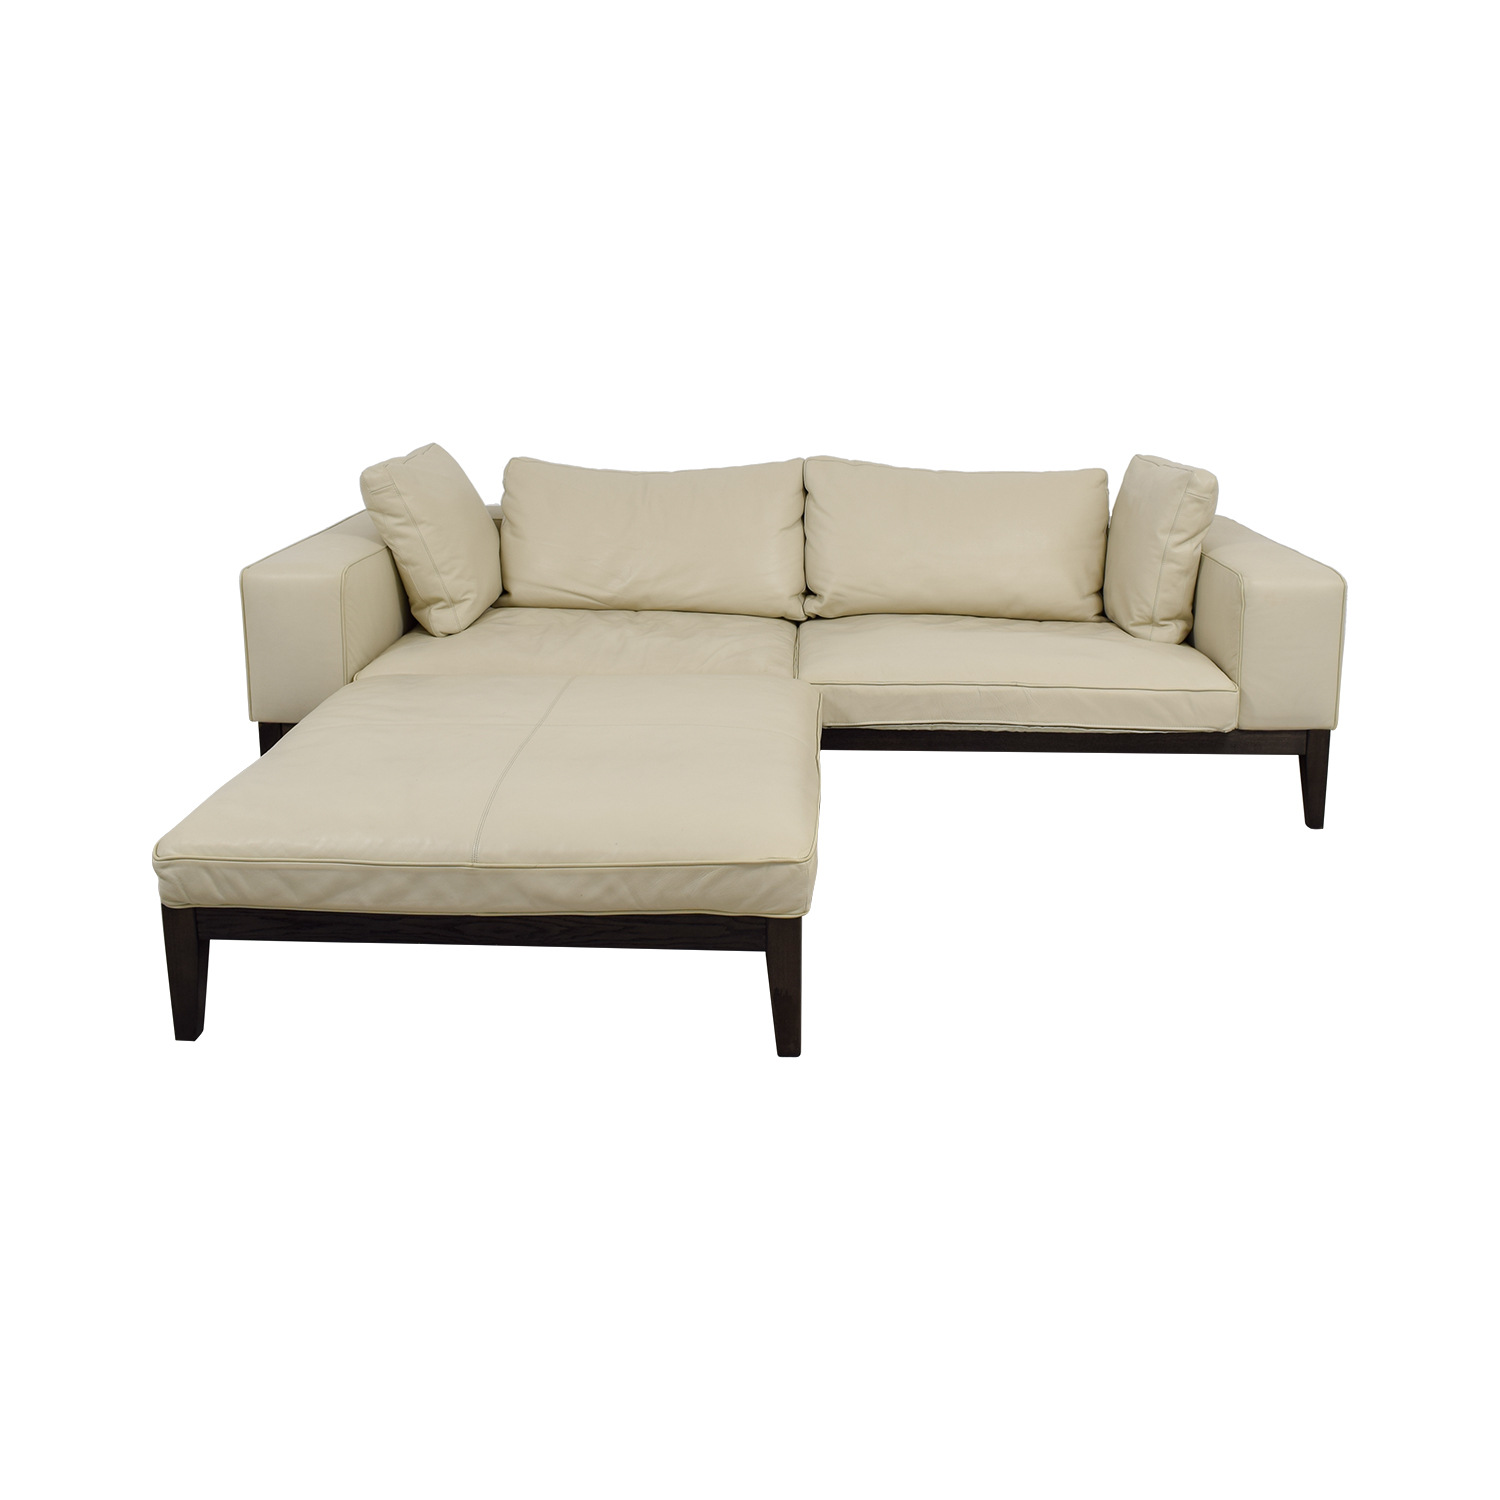 Tree Tree Contemporary Italian Off White Leather Couch with Large Chaise Ottoman used